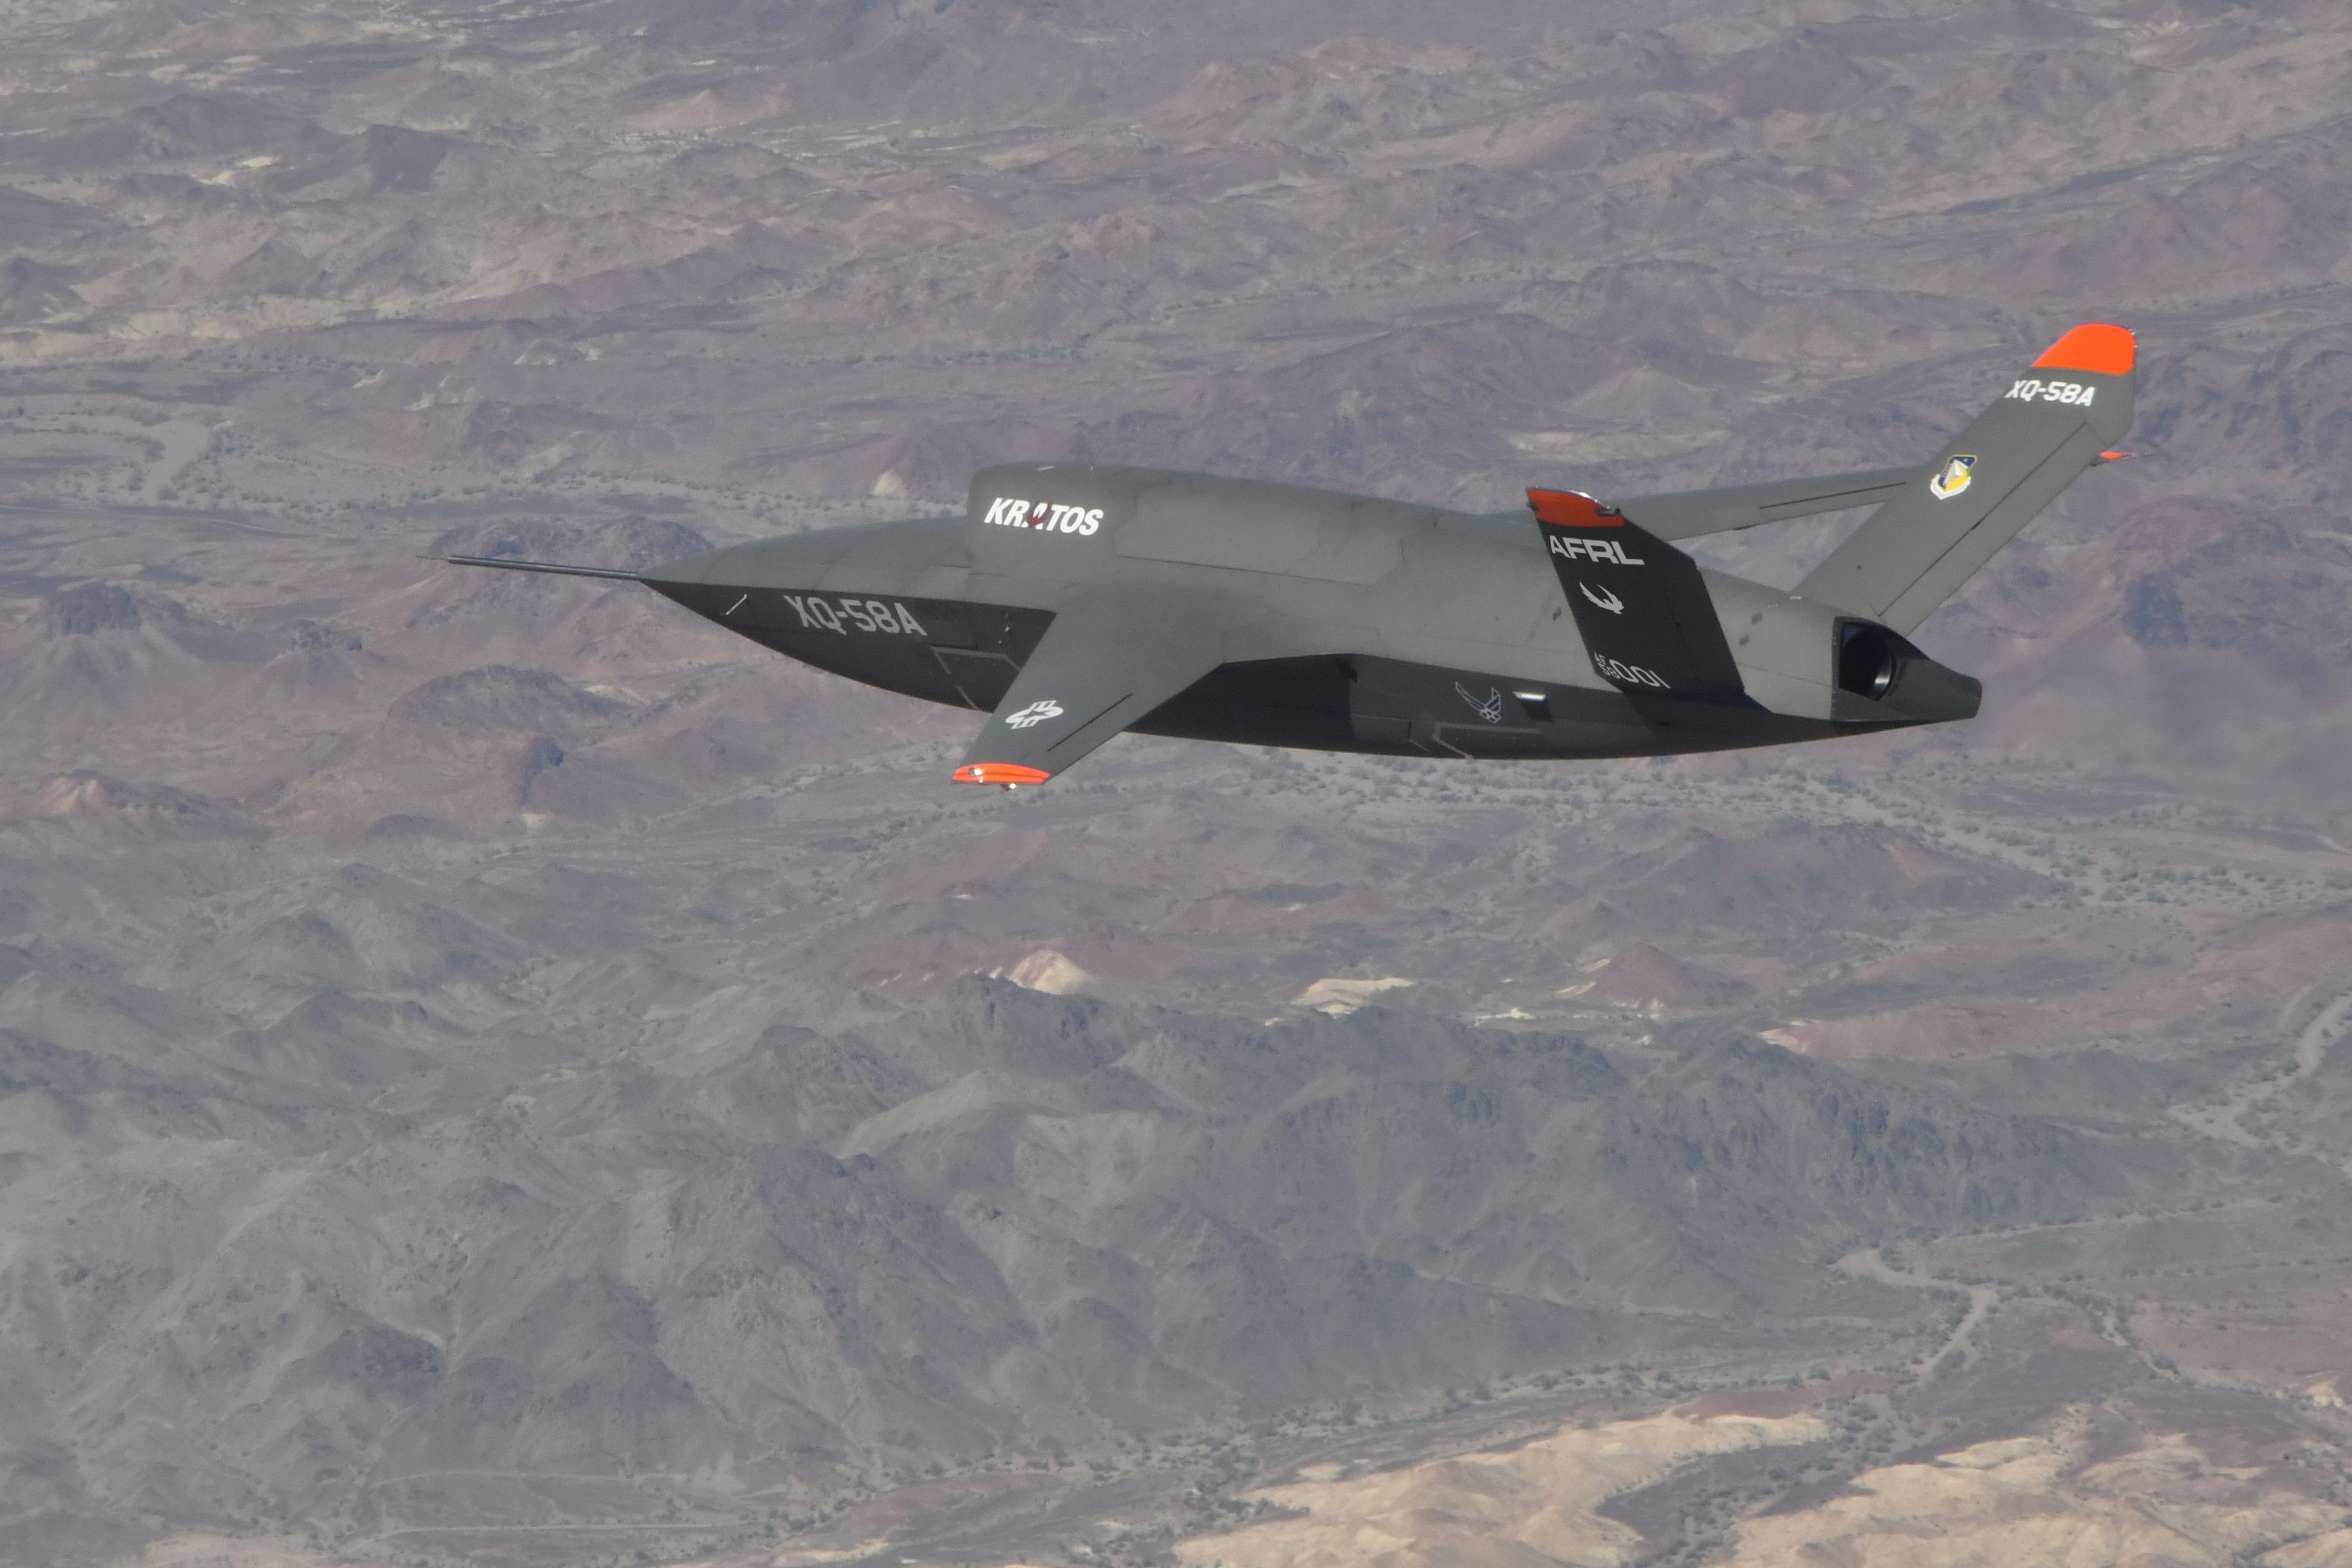 The U.S. Air Force Will Invest in Low-Cost, Disposable Warplanes